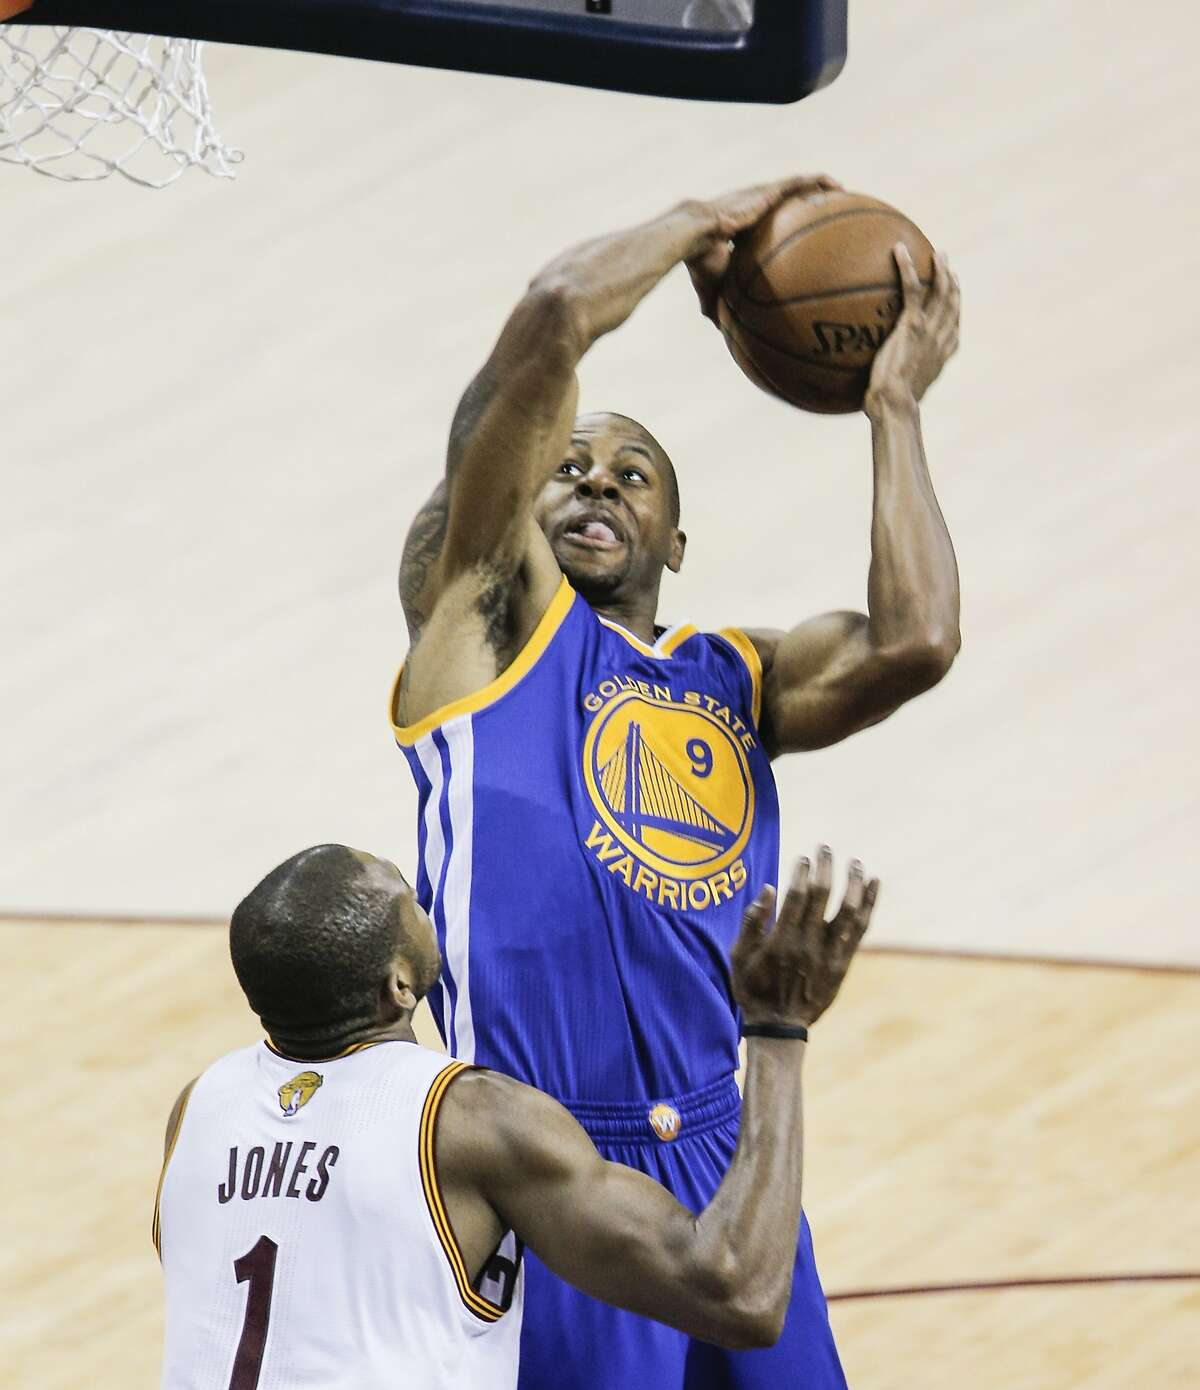 Golden State Warriors' Andre Iguodala tries to shoot over Cleveland Cavaliers' James Jones in the third period during Game 6 of The NBA Finals between the Golden State Warriors and Cleveland Cavaliers at The Quicken Loans Arena on Tuesday, June 16, 2015 in Cleveland, Ohio.